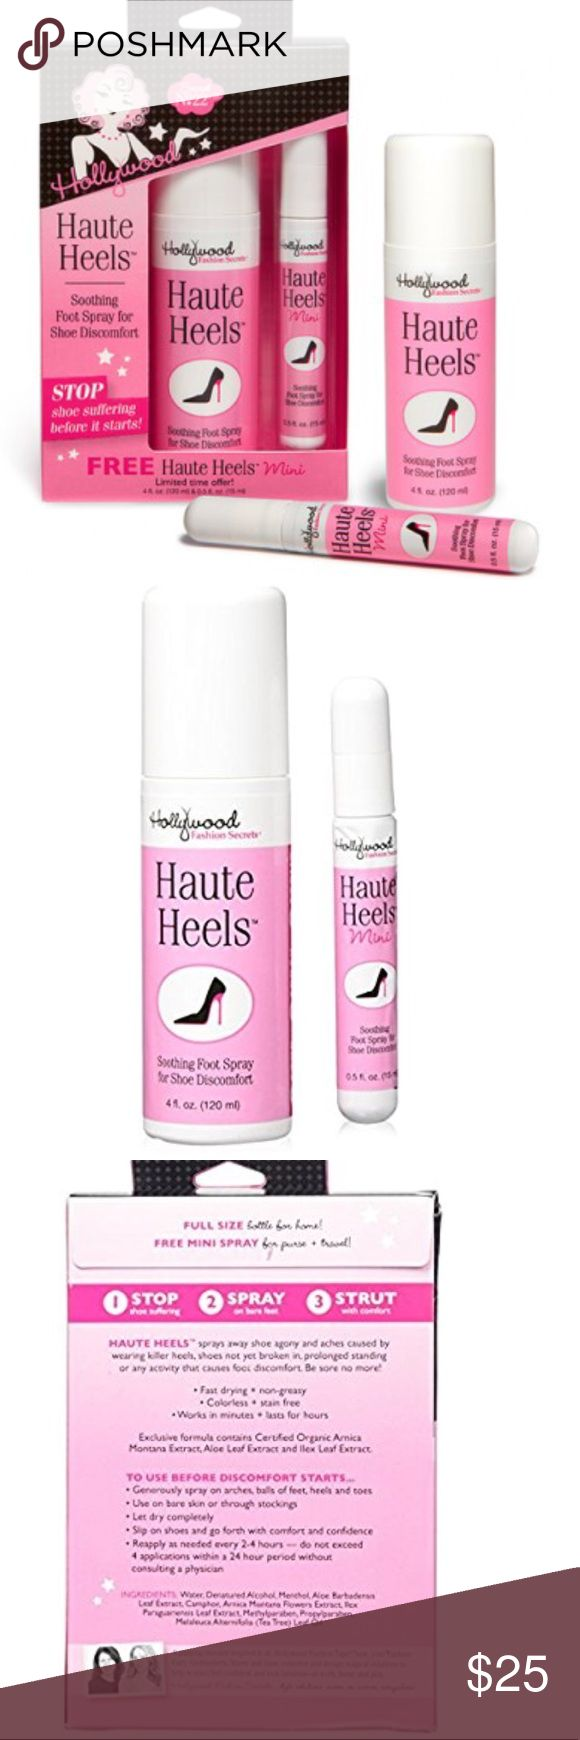 HAUTE HEELS™ VALUE PACK – LIMITED EDITION Stop suffering for style! With Hollywood Fashion Secrets Haute Heels, you can relieve foot pain and aches  Secret No. 22: We love and care for our shoes, but they don't always return the favor! Spray away shoe agony and aches from heels and flats with Haute Heels™ foot spray. The exclusive formula of Certified Organic Arnica Montana Extract, Aloe Leaf Extract and Ilex Leaf Extract is perfect for prolonged standing or any activity that causes…